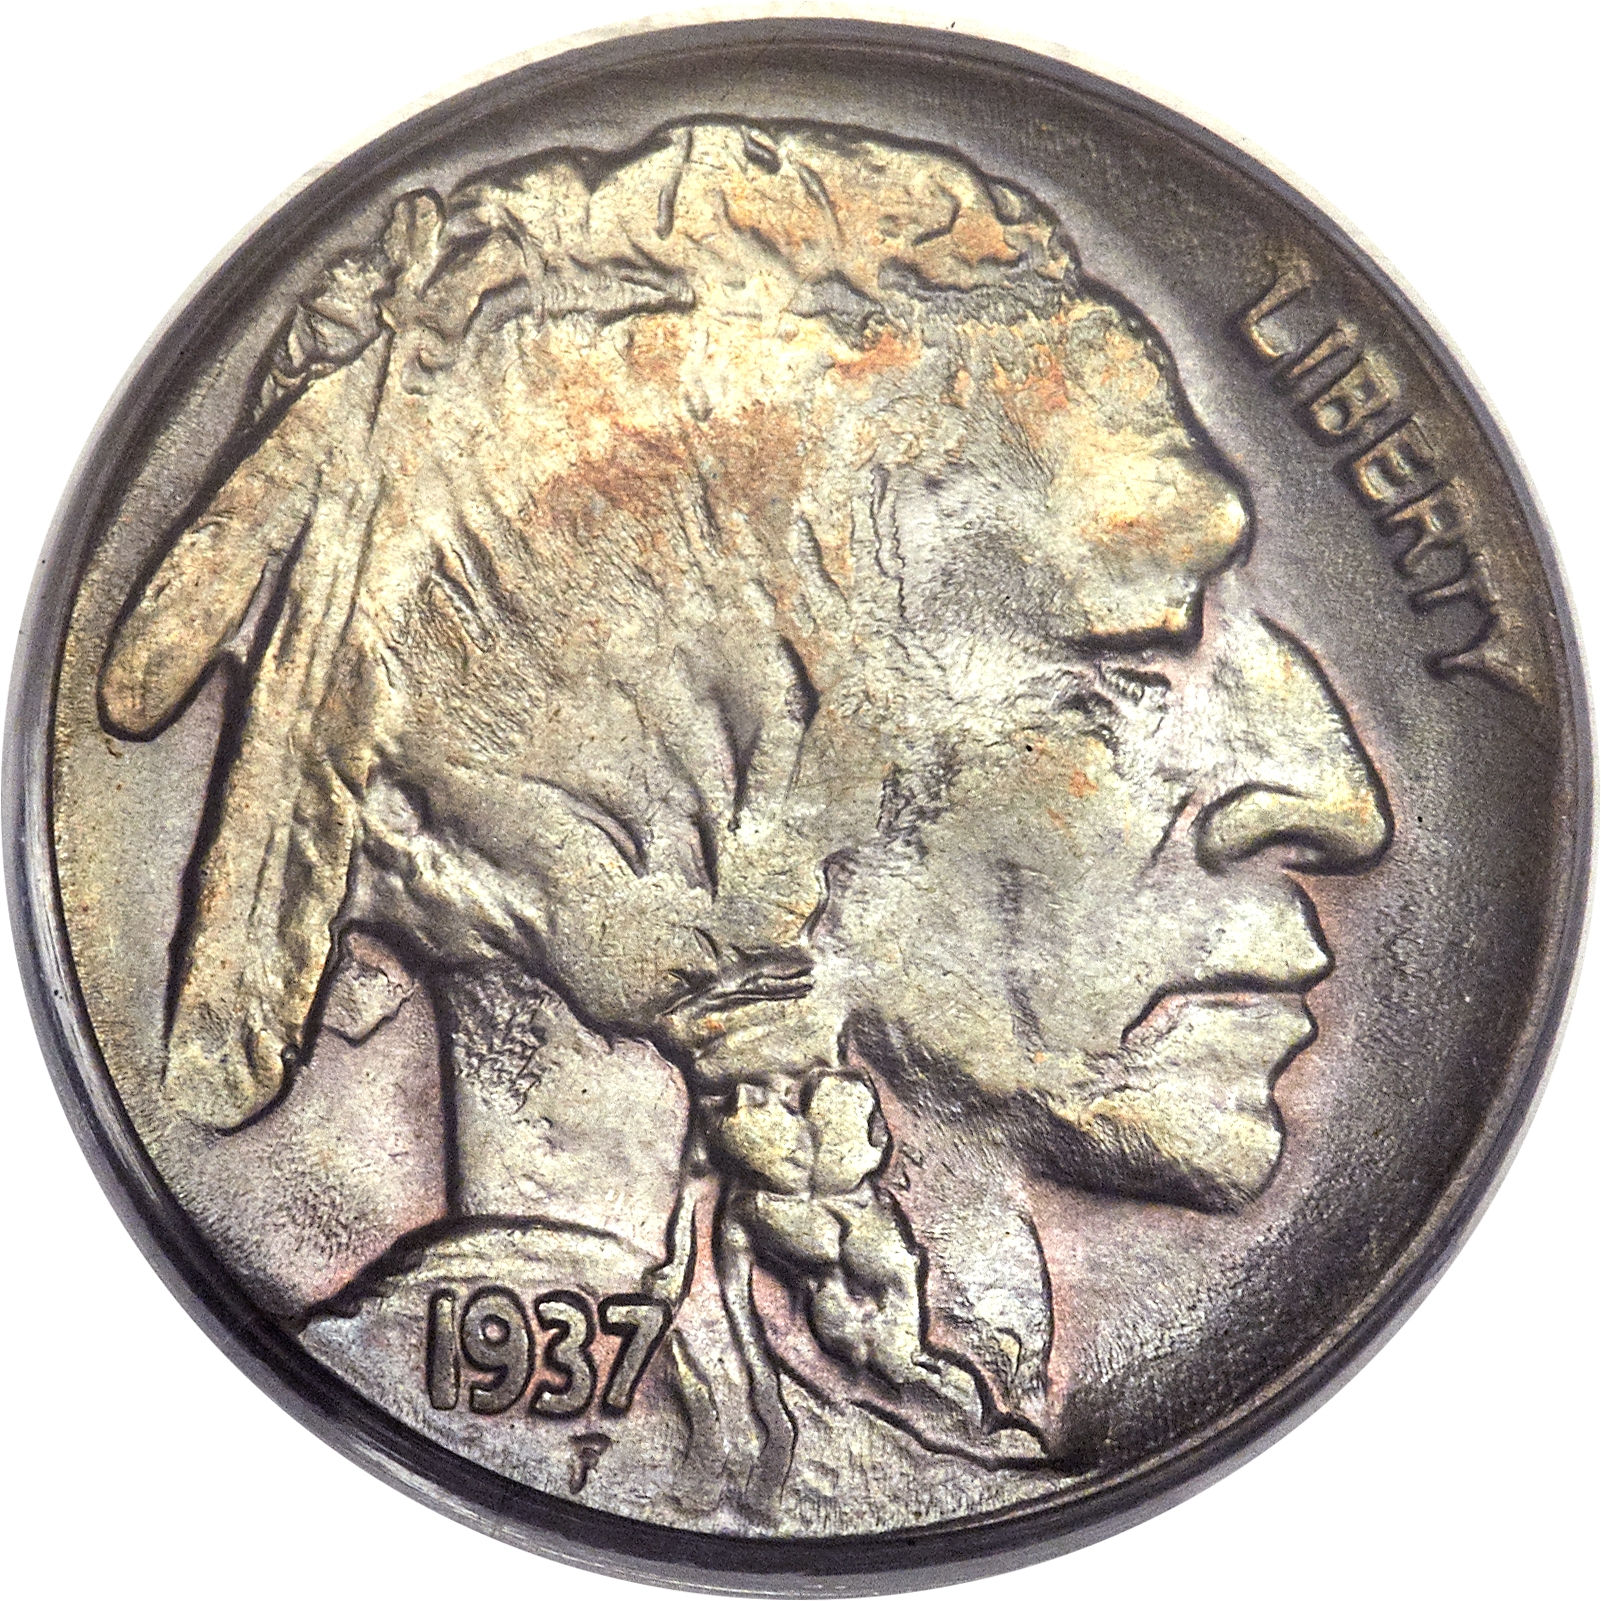 A die clash that left part of the Indian's head imprinted in the reverse die for the 1937-D 5-cent piece prompted polishing by an enthusiastic Mint worker. A little too much enthusiasm, it seems, costing the  buffalo on the reverse part of its leg. This PCGS MS-63 coin sold for $4,700 in June 2015.  Heritage Auctions